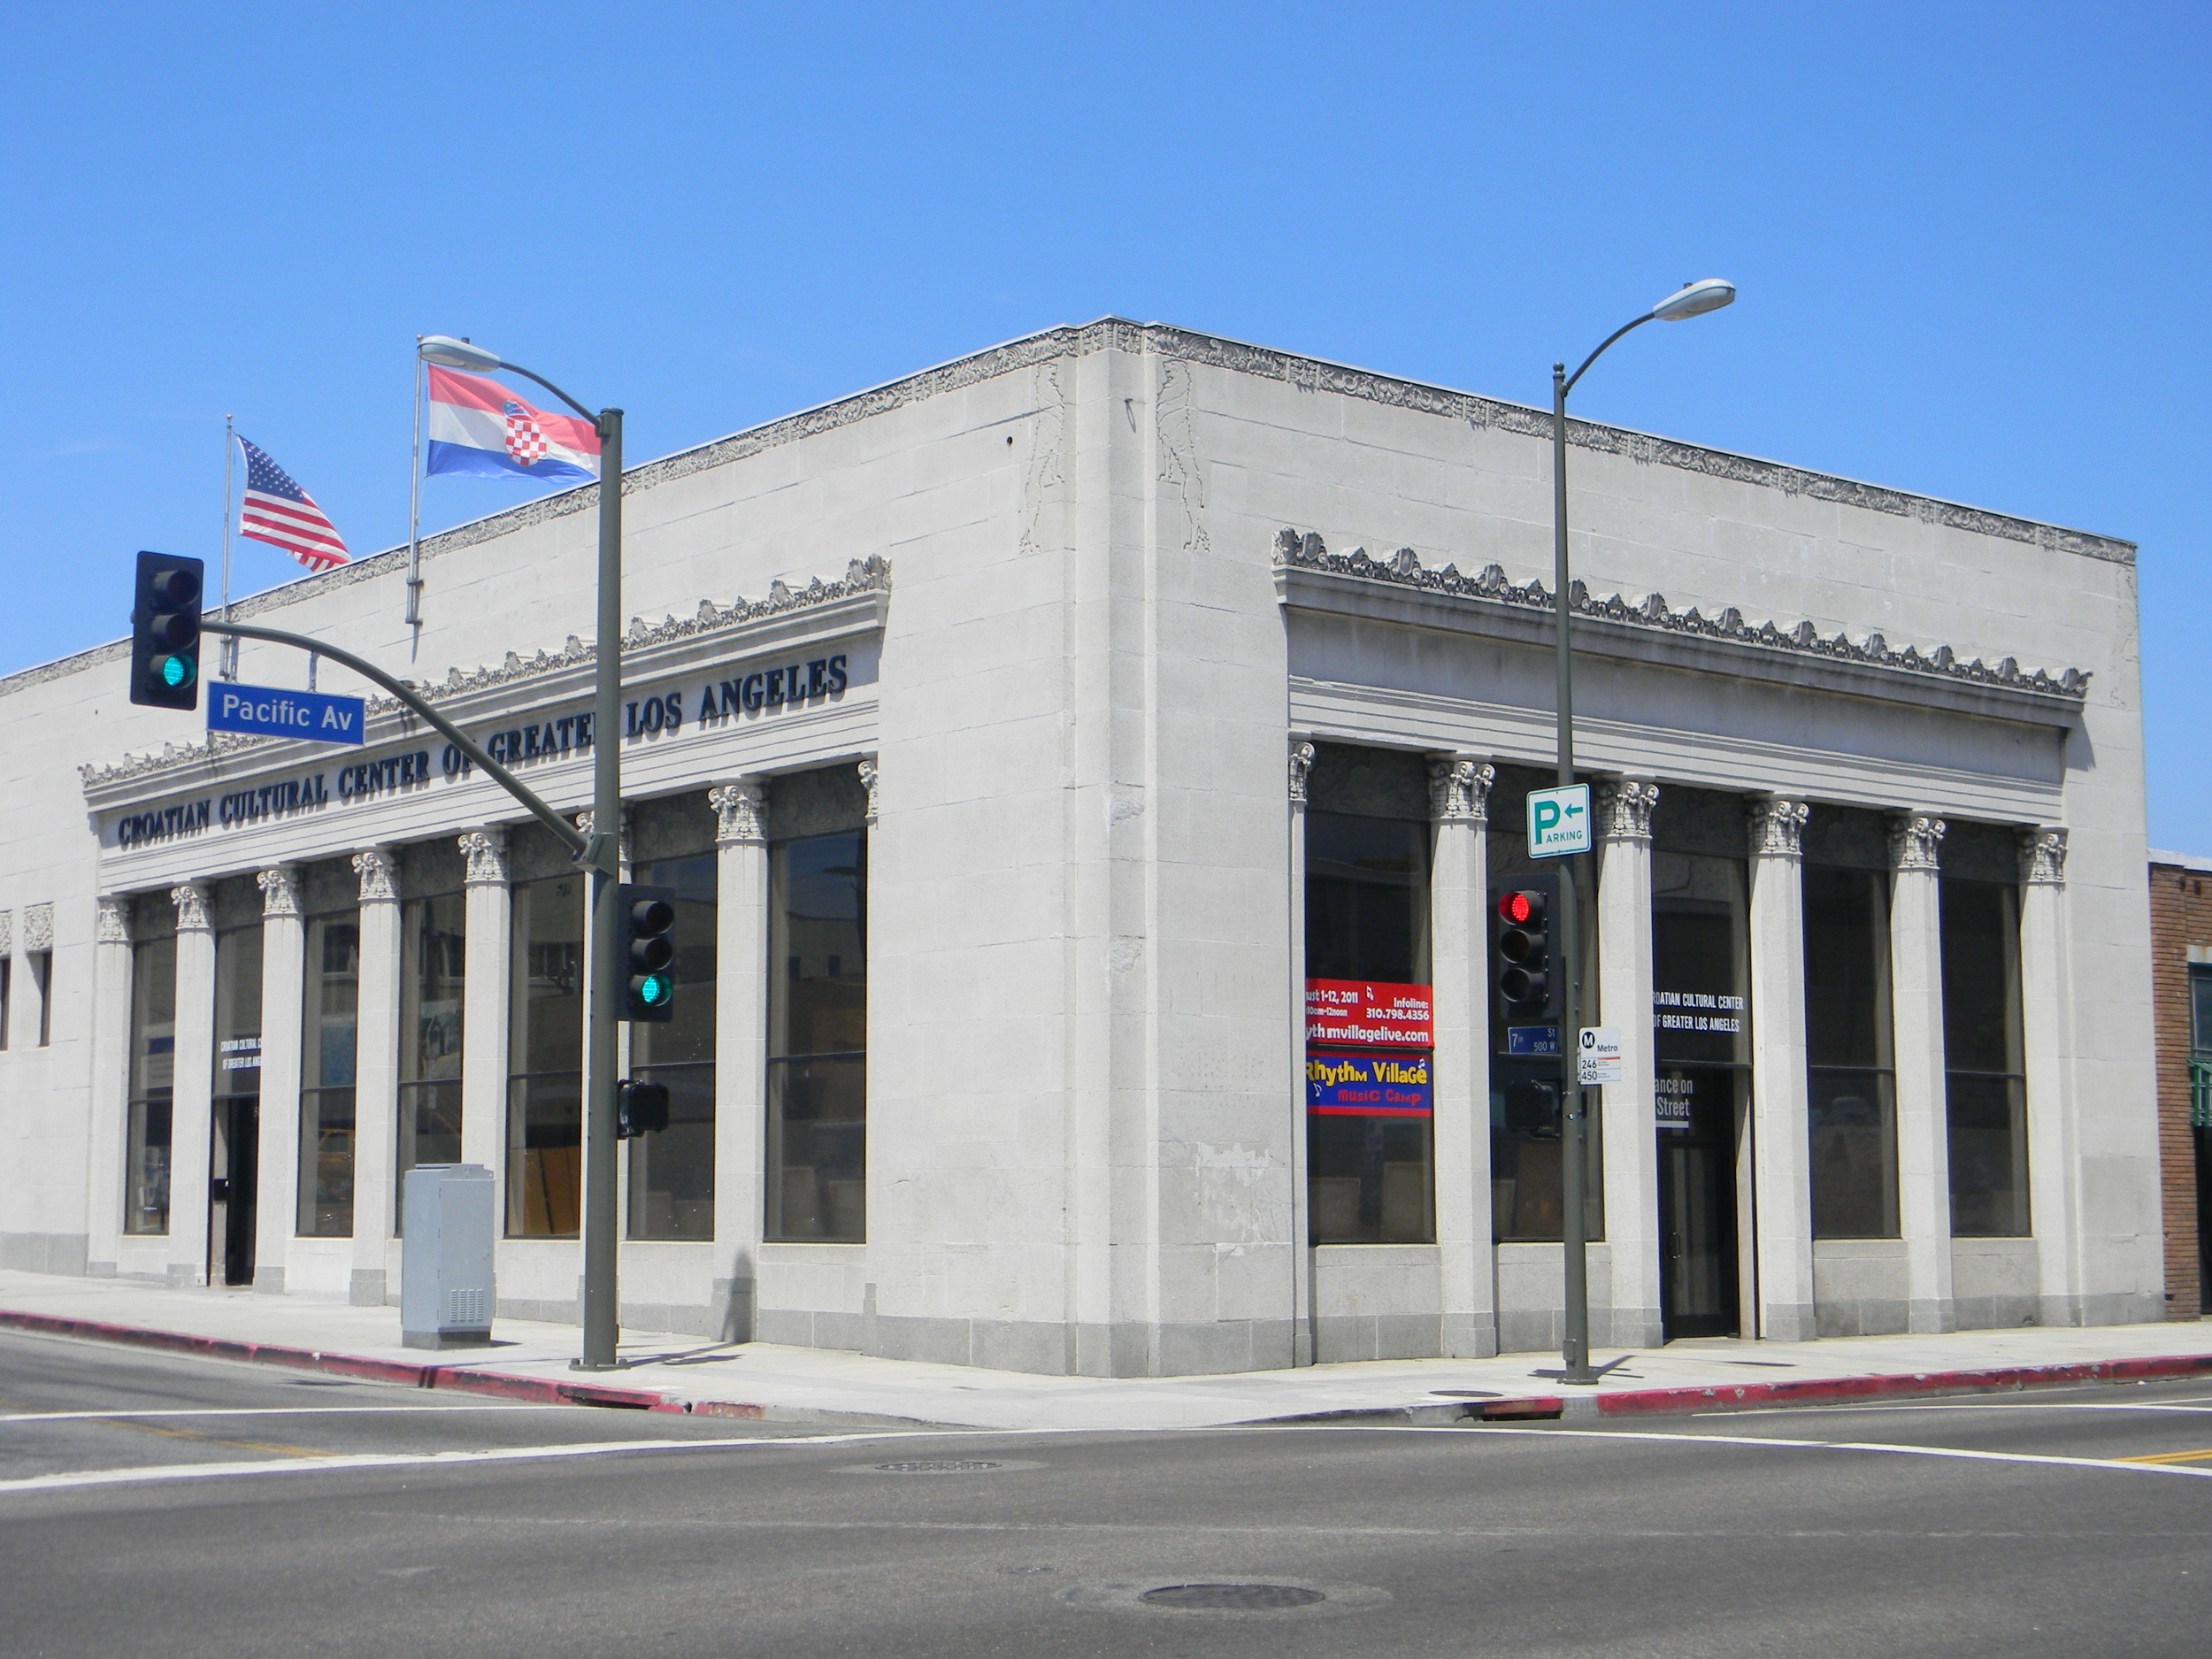 Croatian Cultural Center of Greater Los Angeles